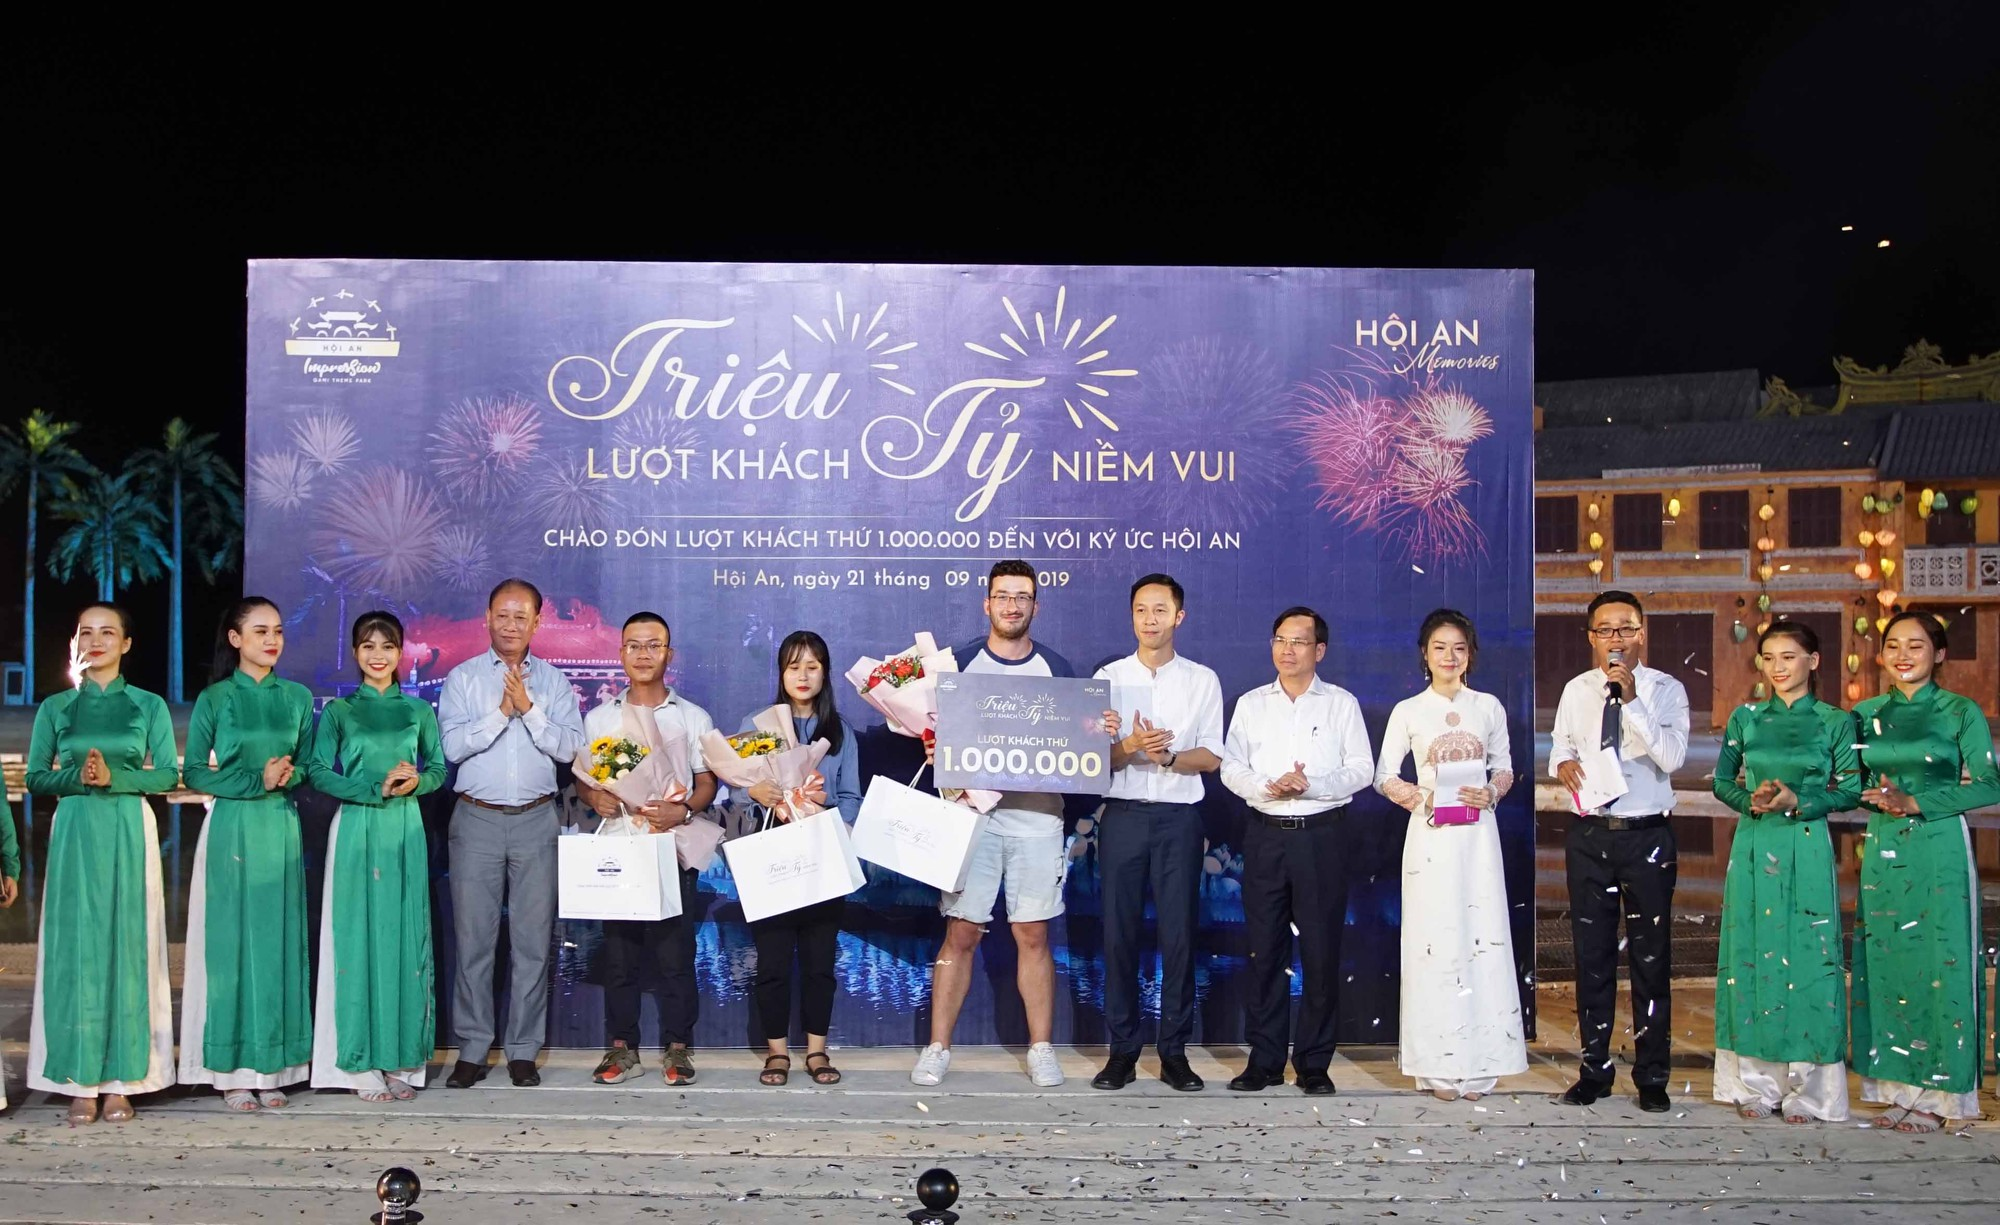 Hoi An Memories show welcomes 1 millionth visitor